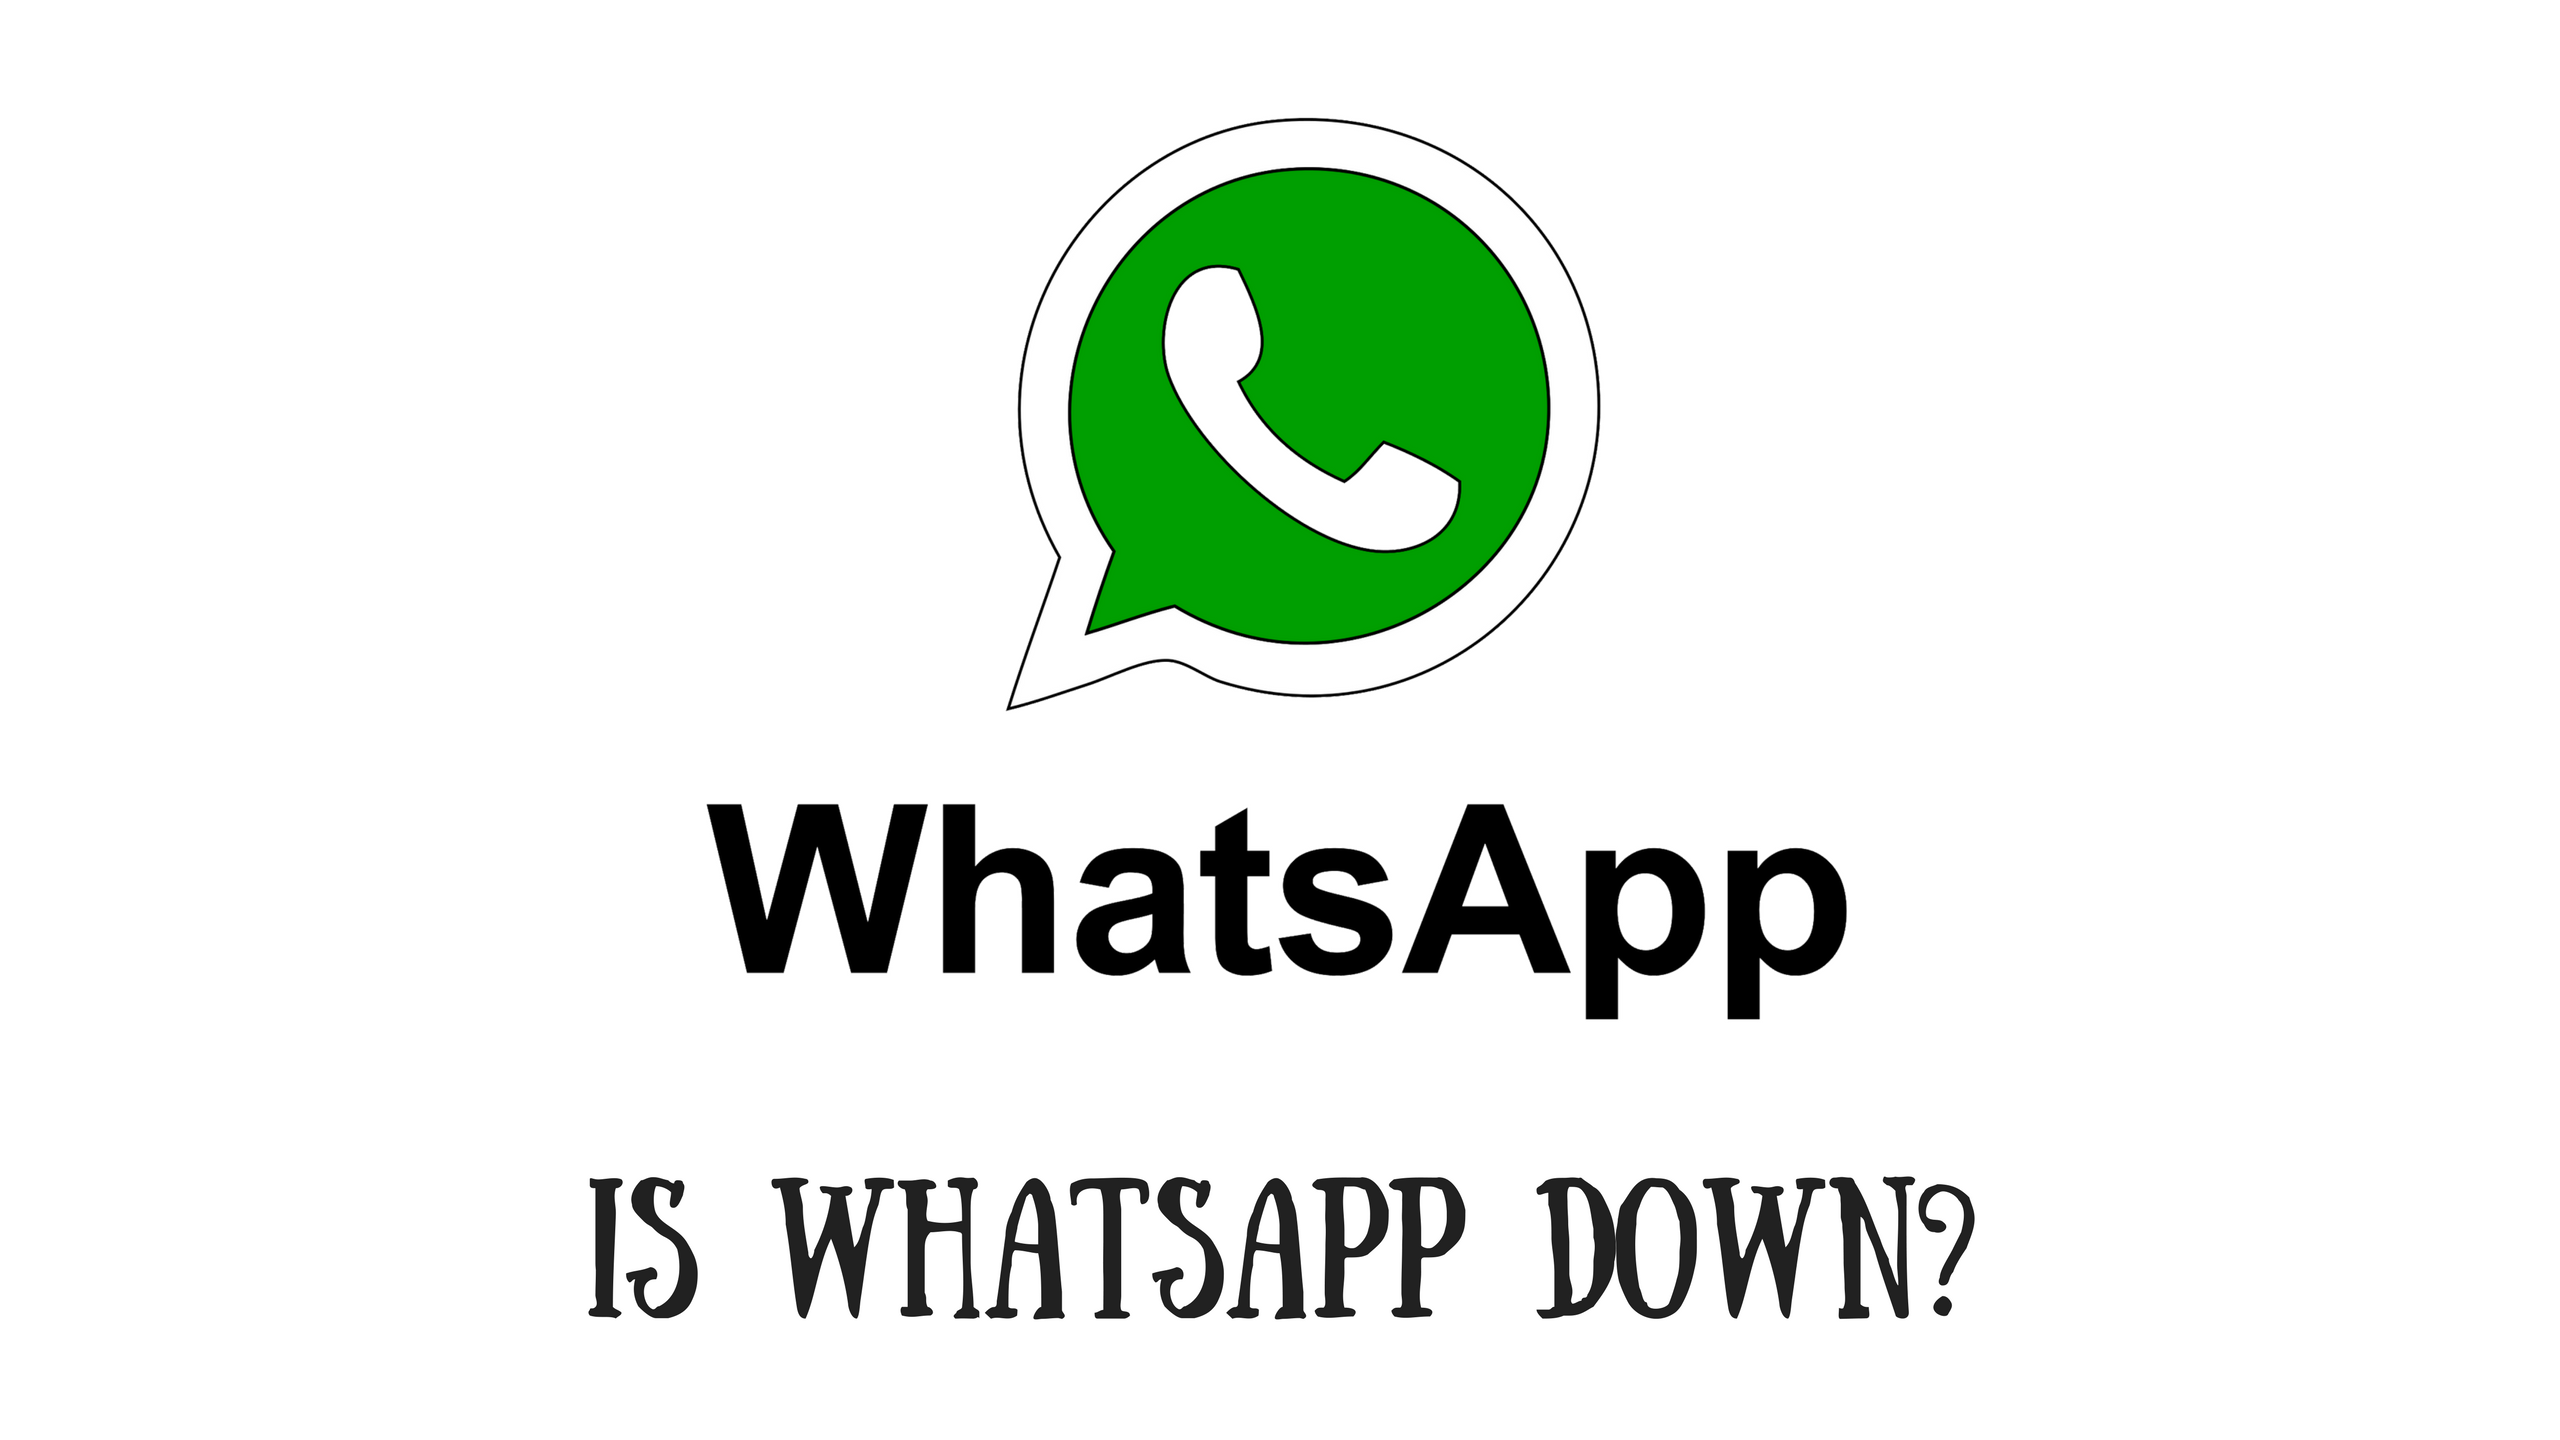 WhatsApp Down Not Working